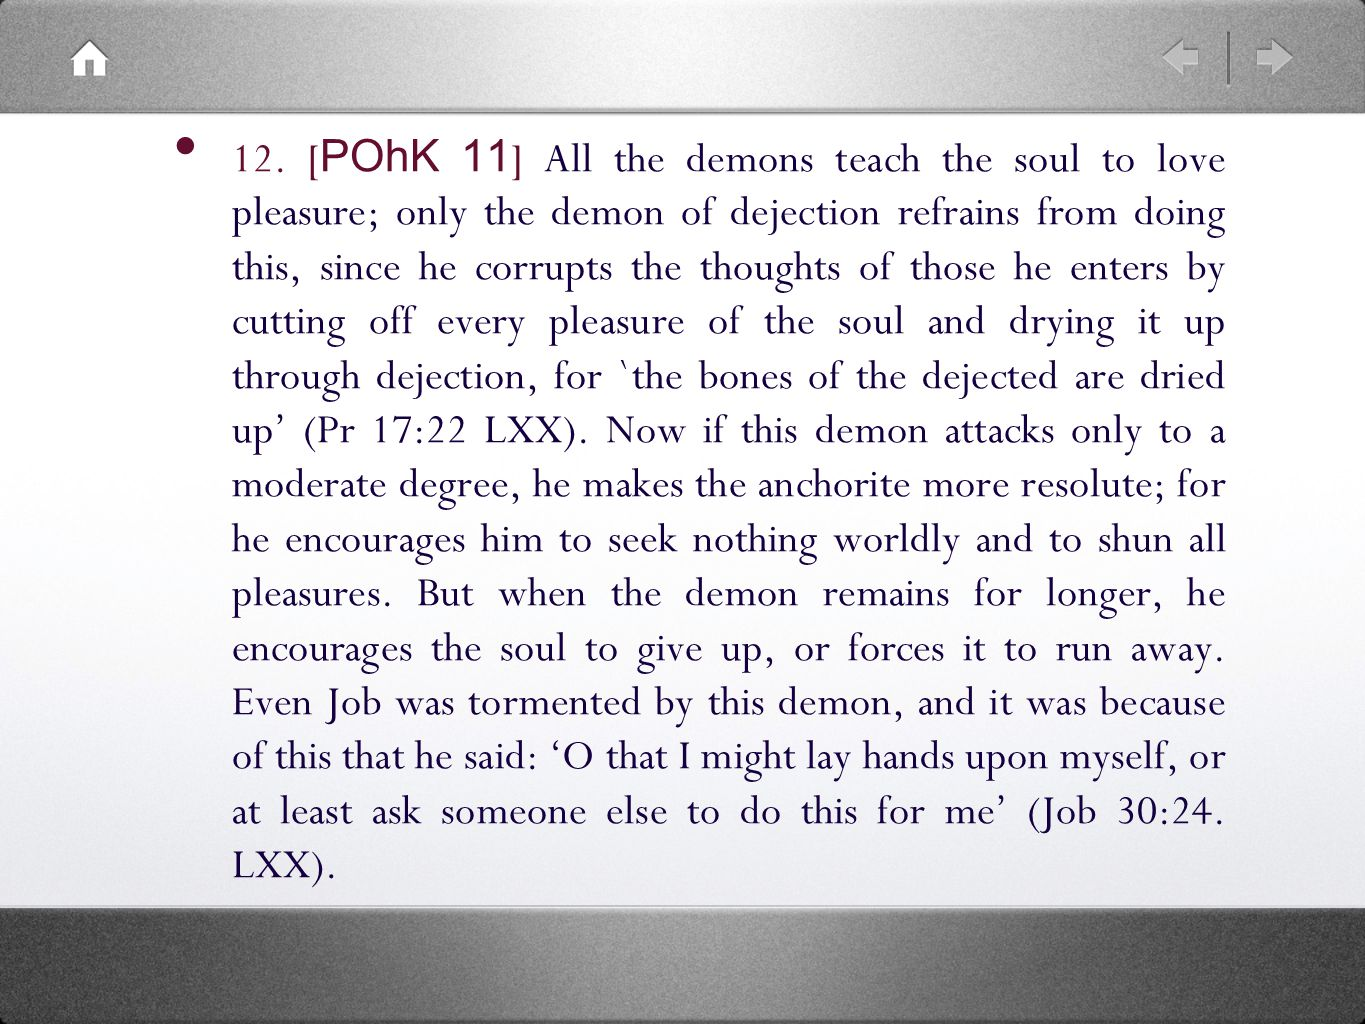 12. [ POhK 11 ] All the demons teach the soul to love pleasure; only the demon of dejection refrains from doing this, since he corrupts the thoughts o